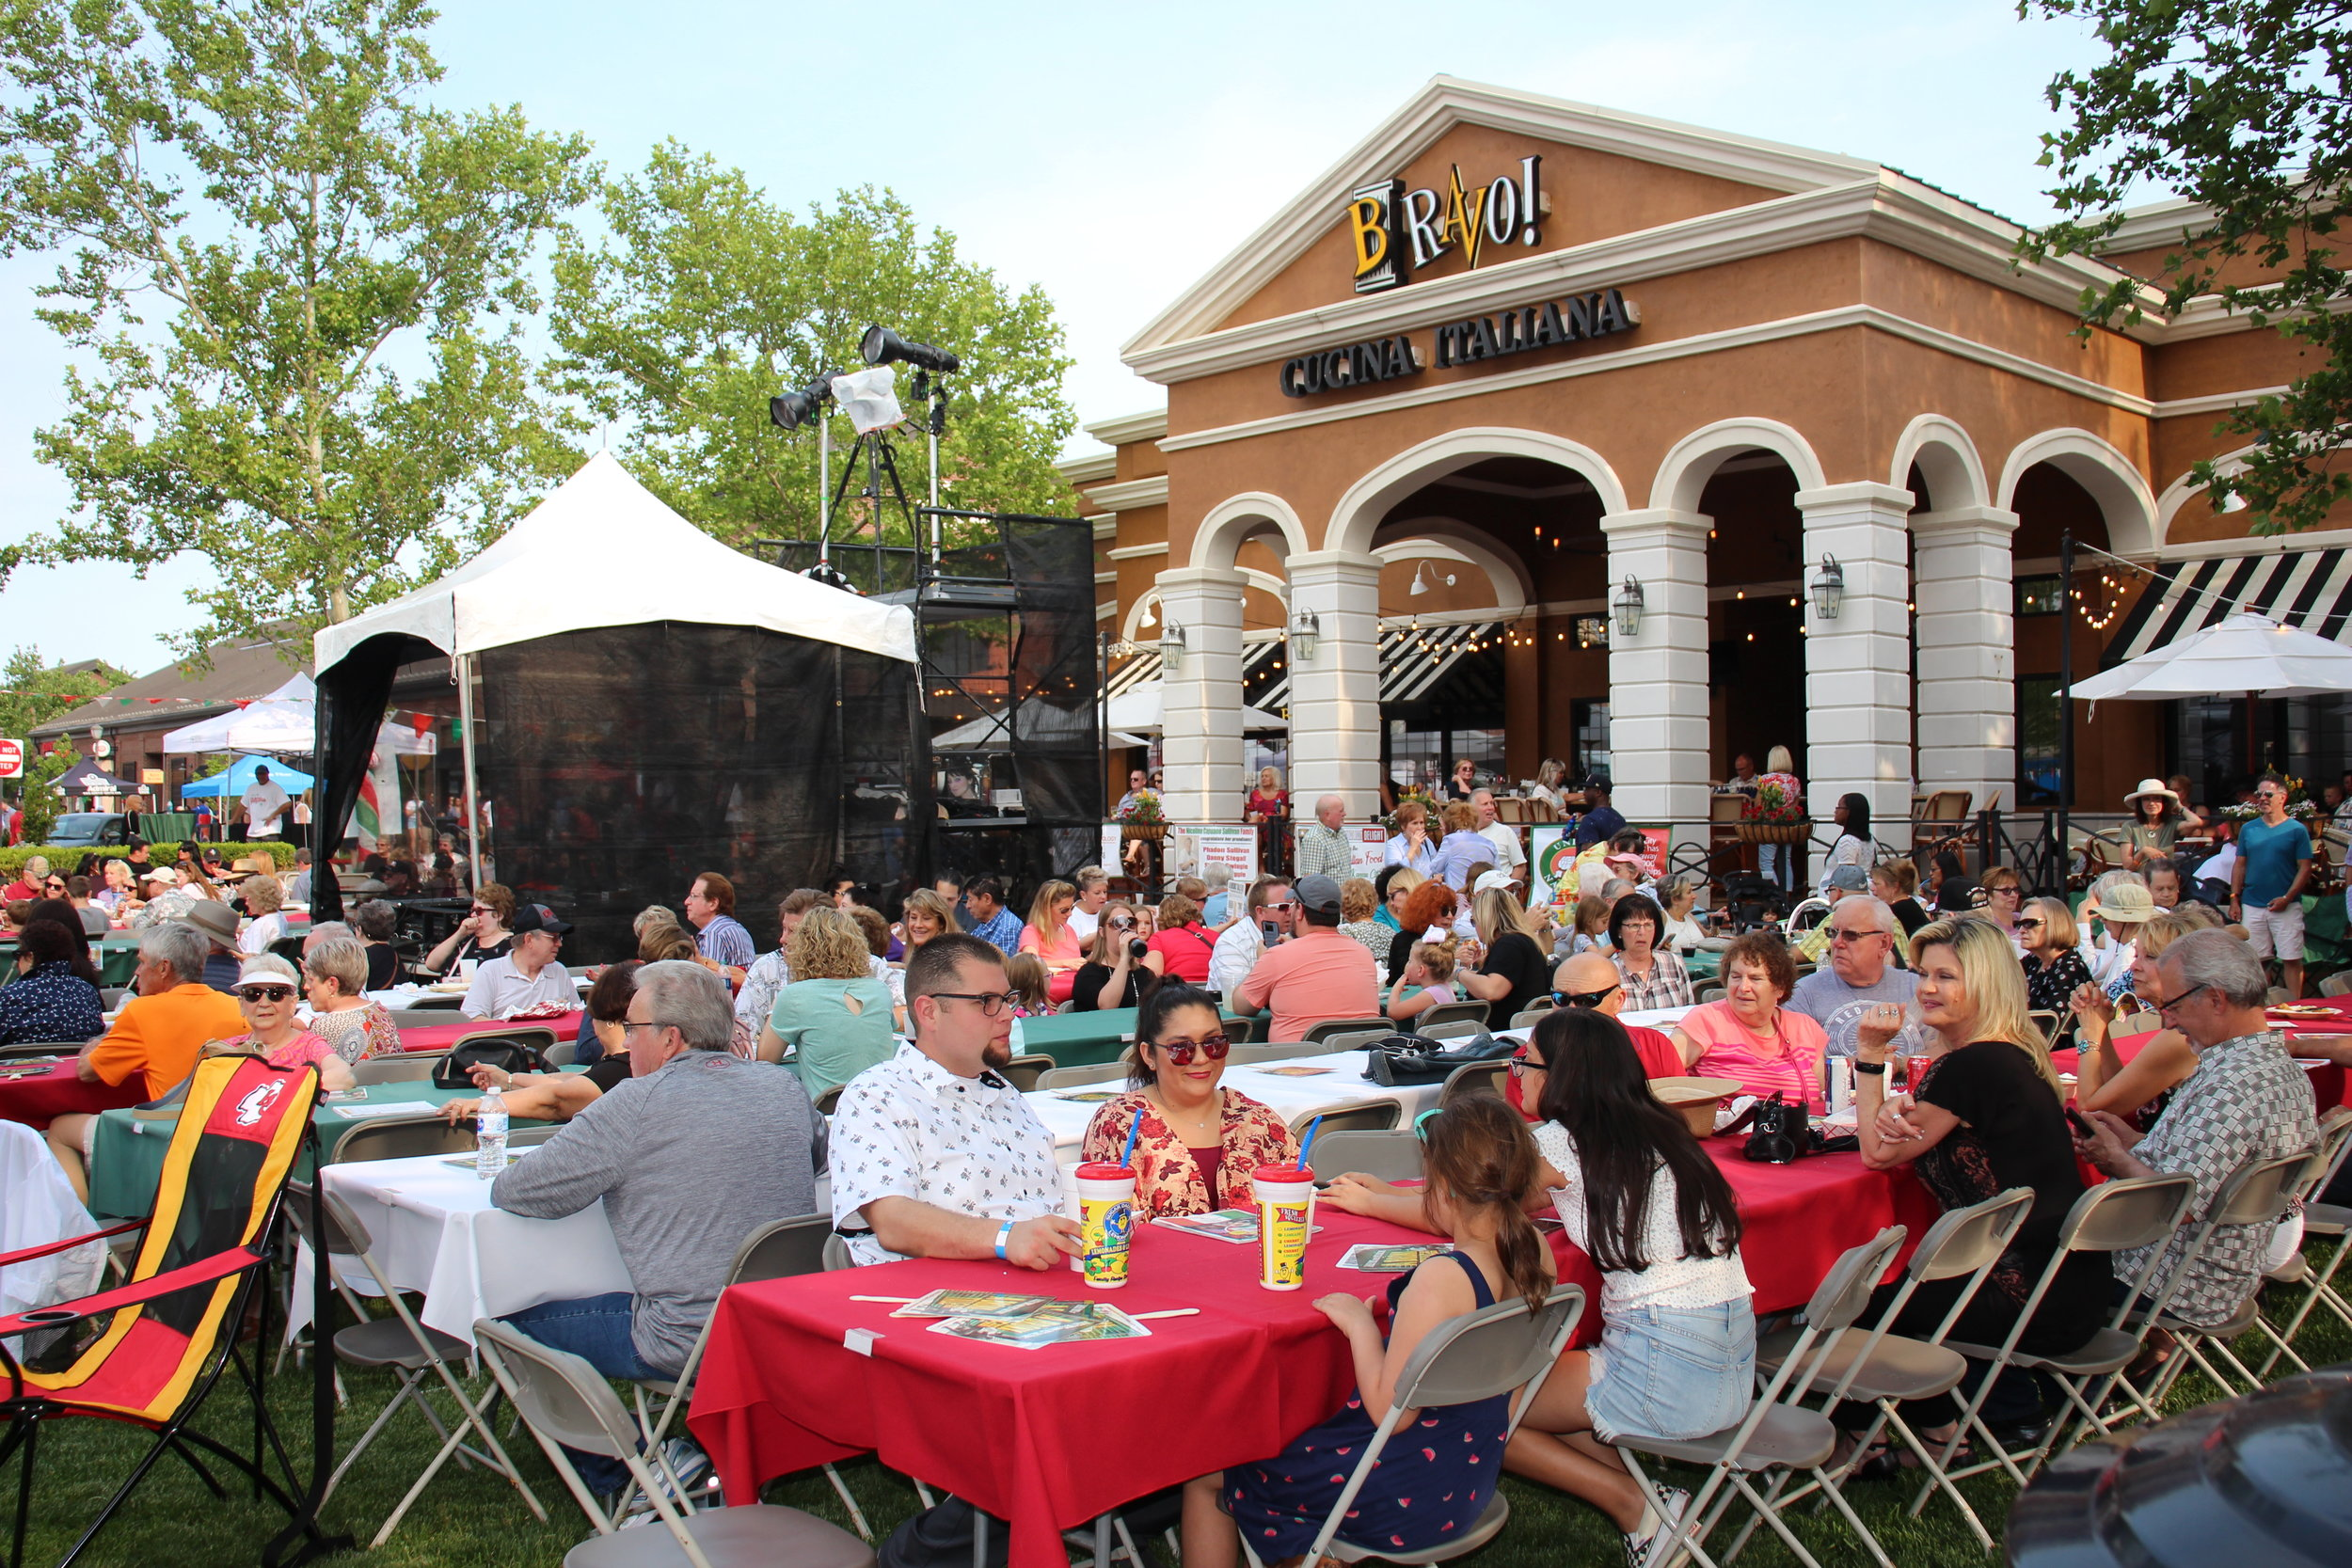 JEANETTE FAUBION/Citizen photo  The annual Festa Italiana was held May 31 through June 2 at Zona Rosa Town Center, presented by the Kansas City chapter of UNICO, the largest Italian-American service organization in the country. The event featured live music and other entertainment, Italian food, vendors and activities for kids. Featured events included wine tastings, Catholic mass and meatball and cannoli eating contests.